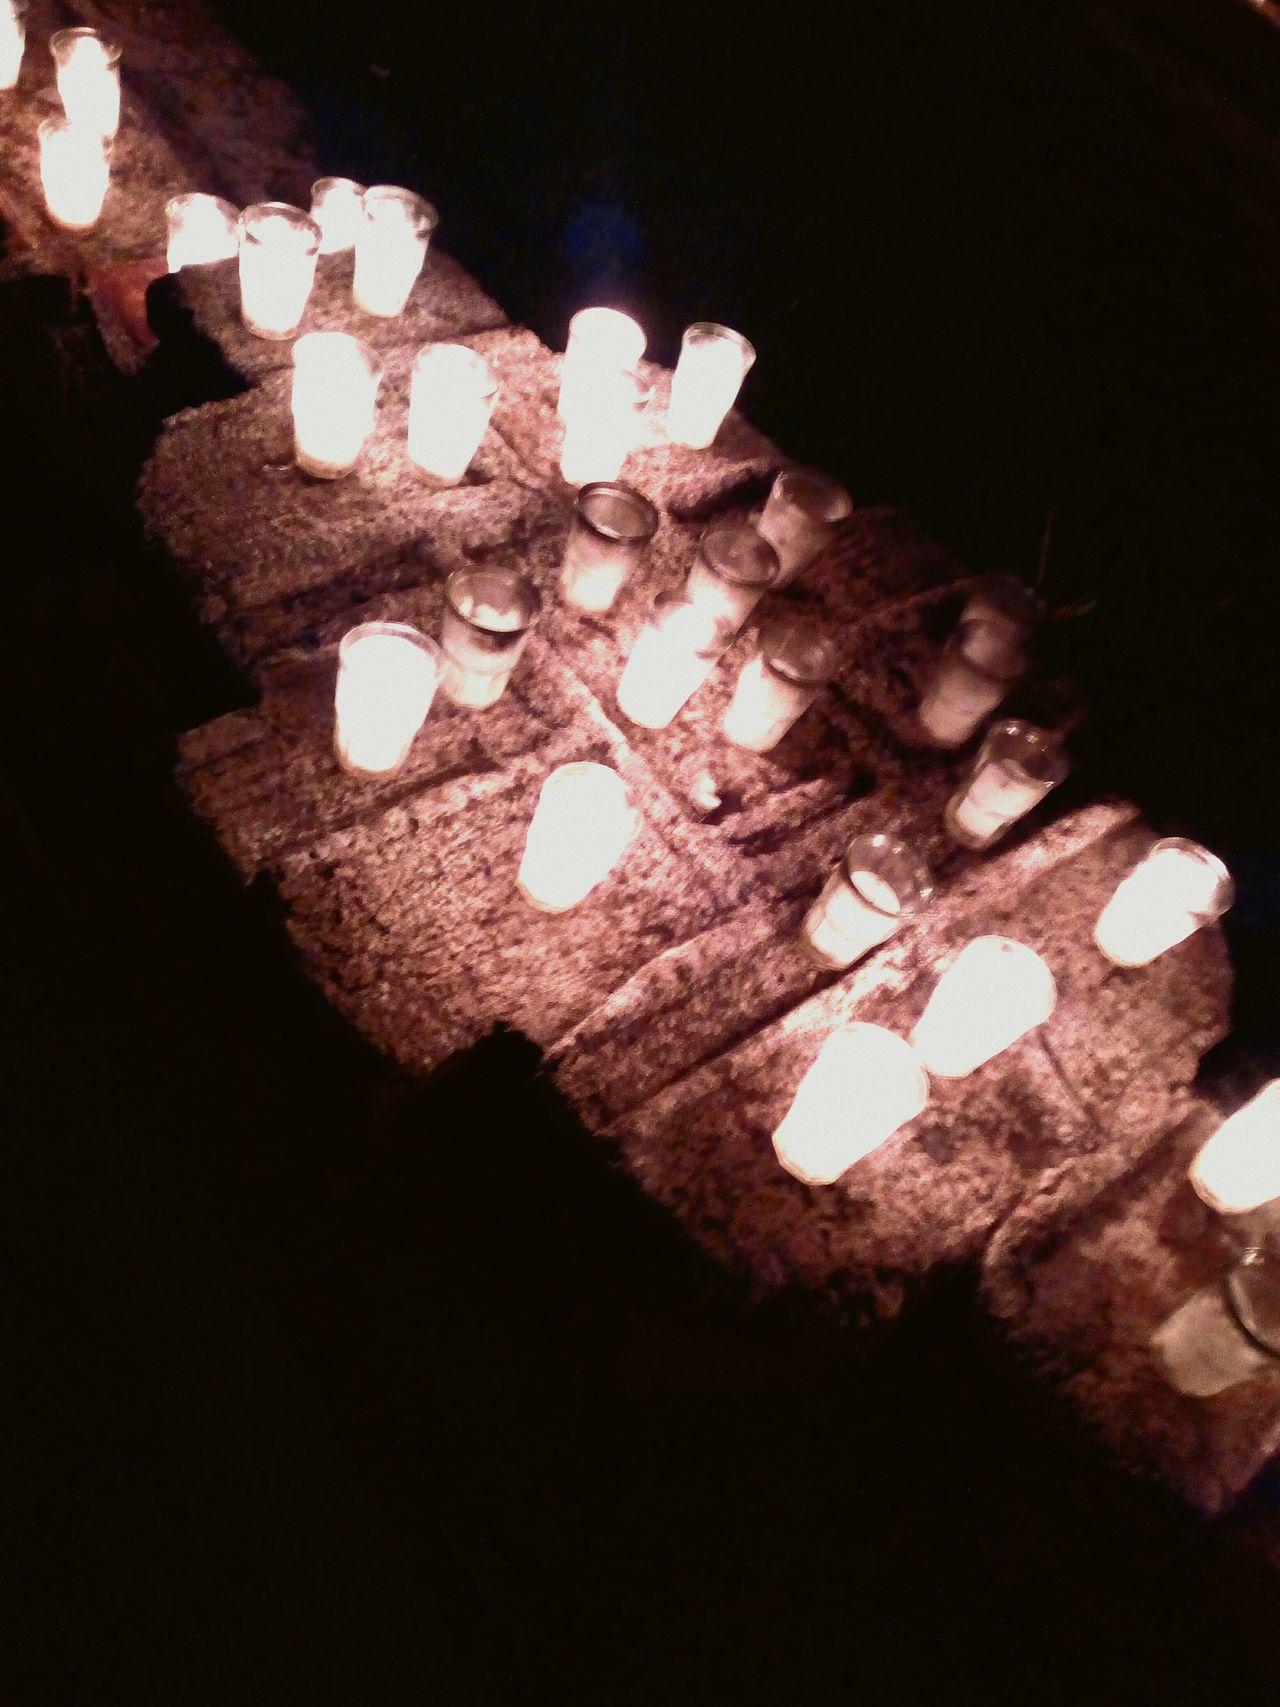 AntiguaGuatemala! ❤ Casa Santo Domingo Dark Candles :)